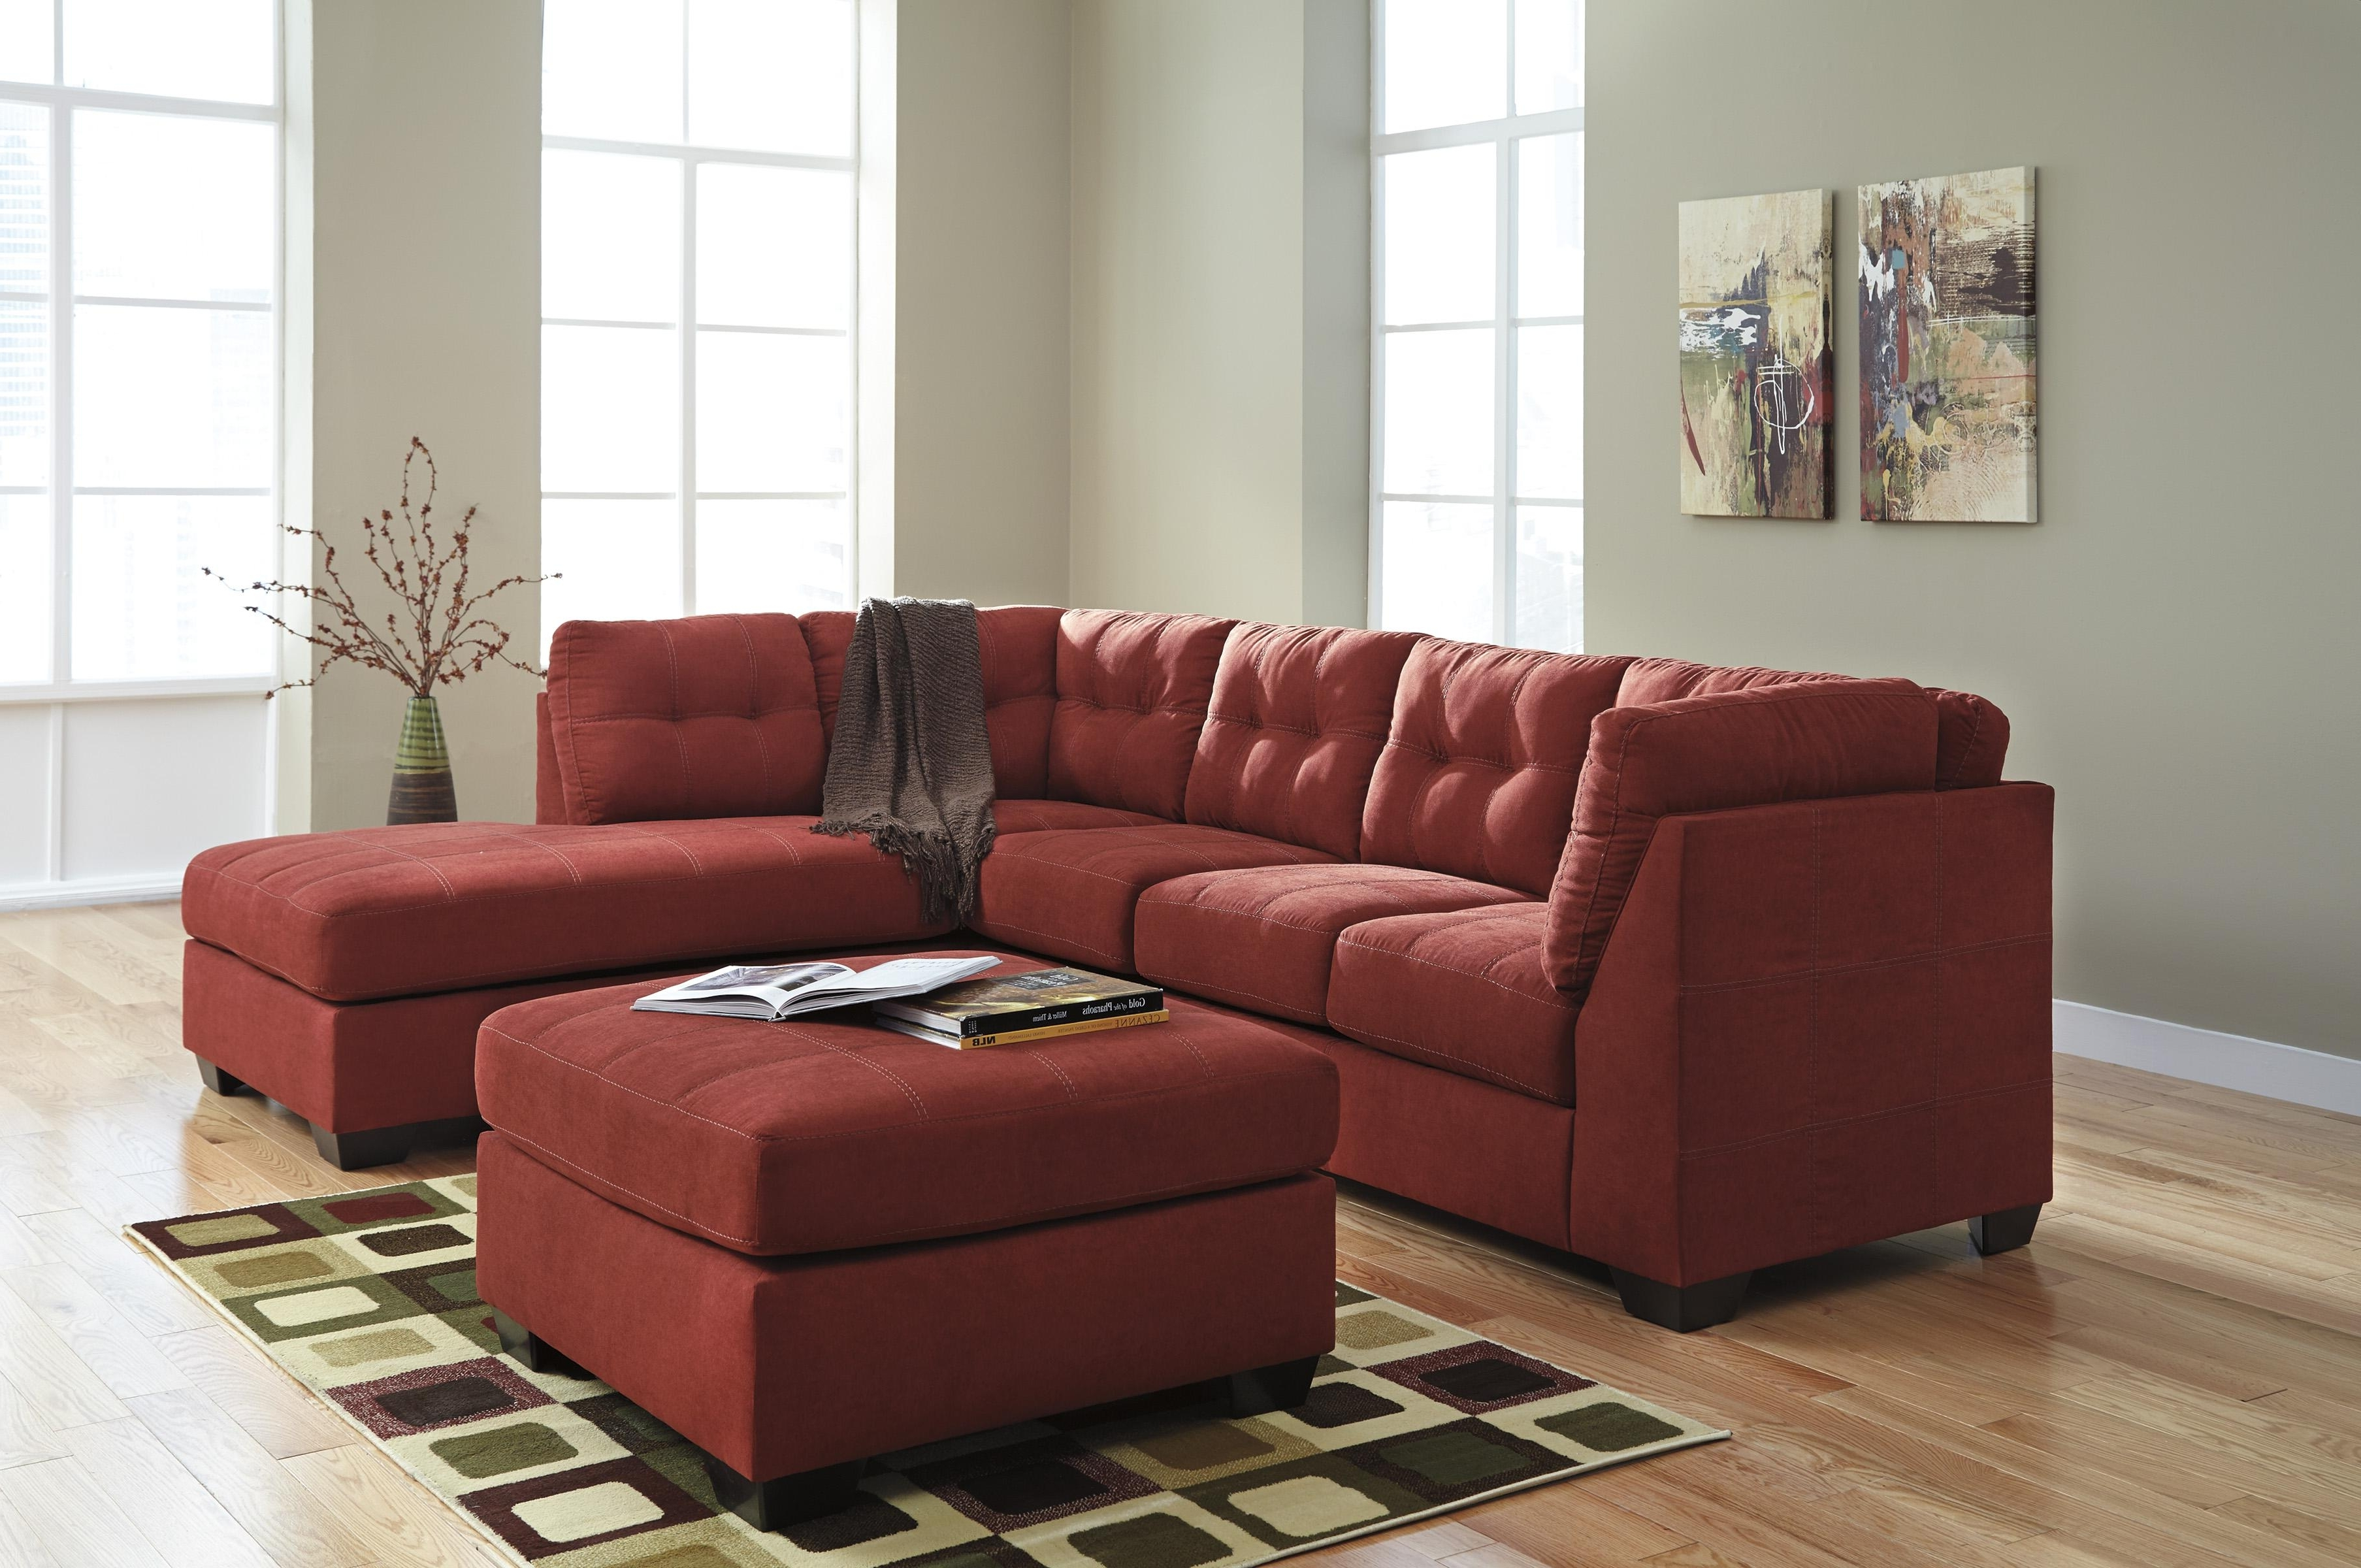 2 Piece Sectional Sofas With Chaise With Trendy Benchcraft Maier – Sienna 2 Piece Sectional W/ Sleeper Sofa (View 8 of 15)